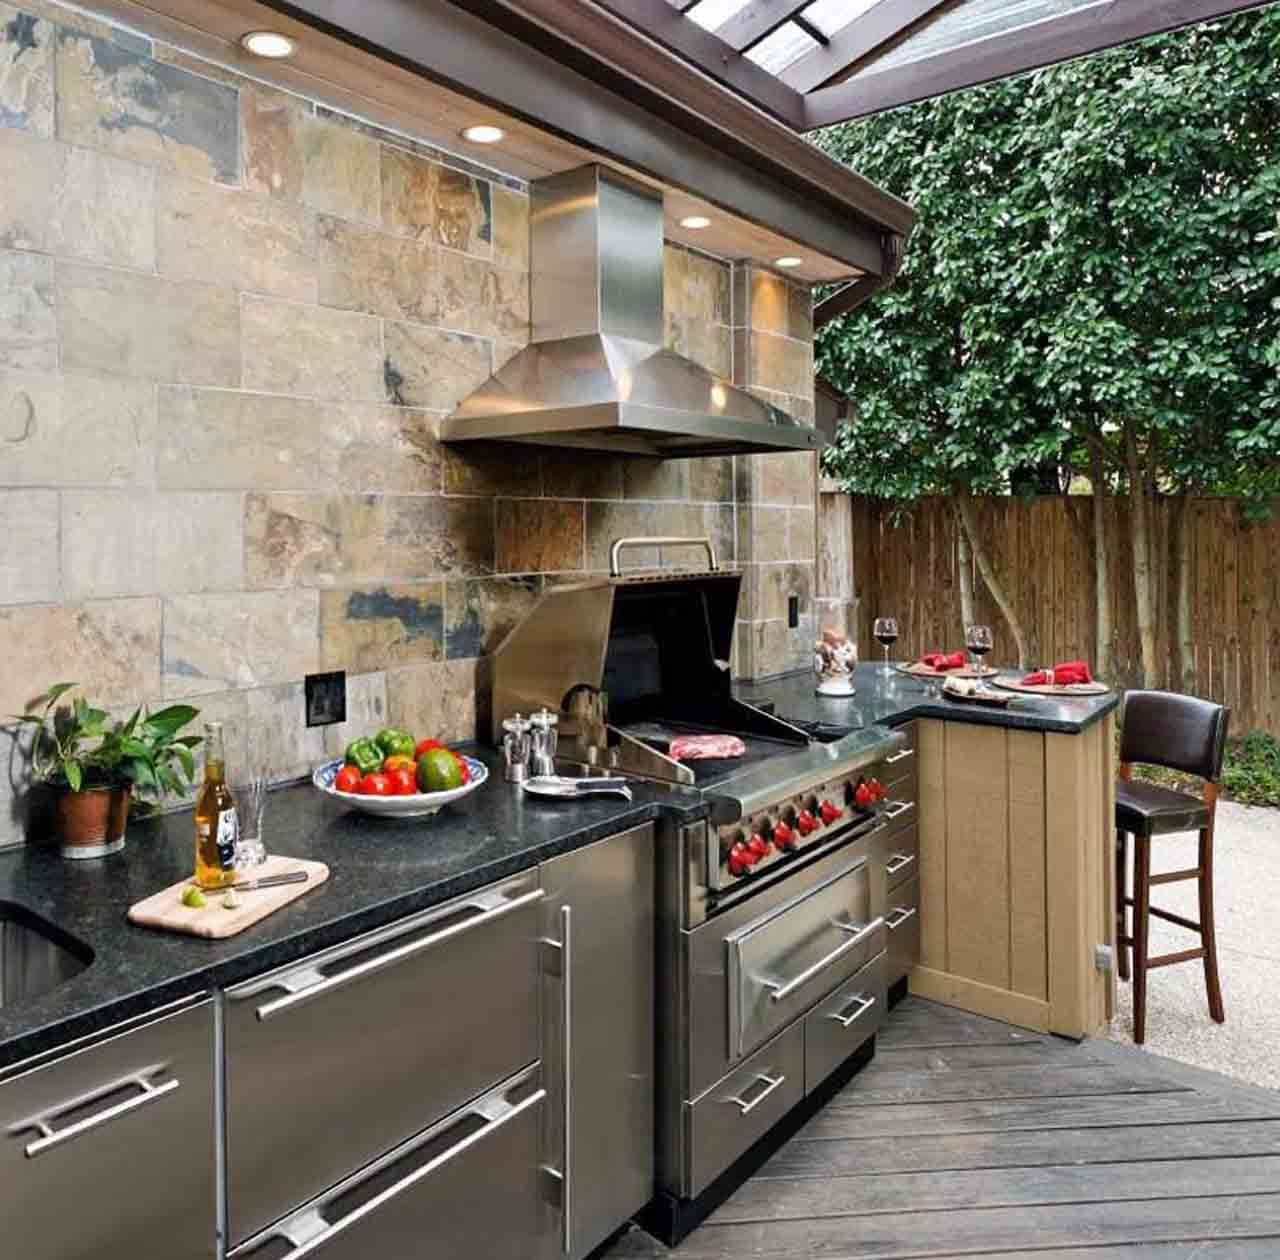 Outdoor Kitchen Cupboards: Planning Your Own Outdoor Kitchens: Modern Outdoor Kitchen